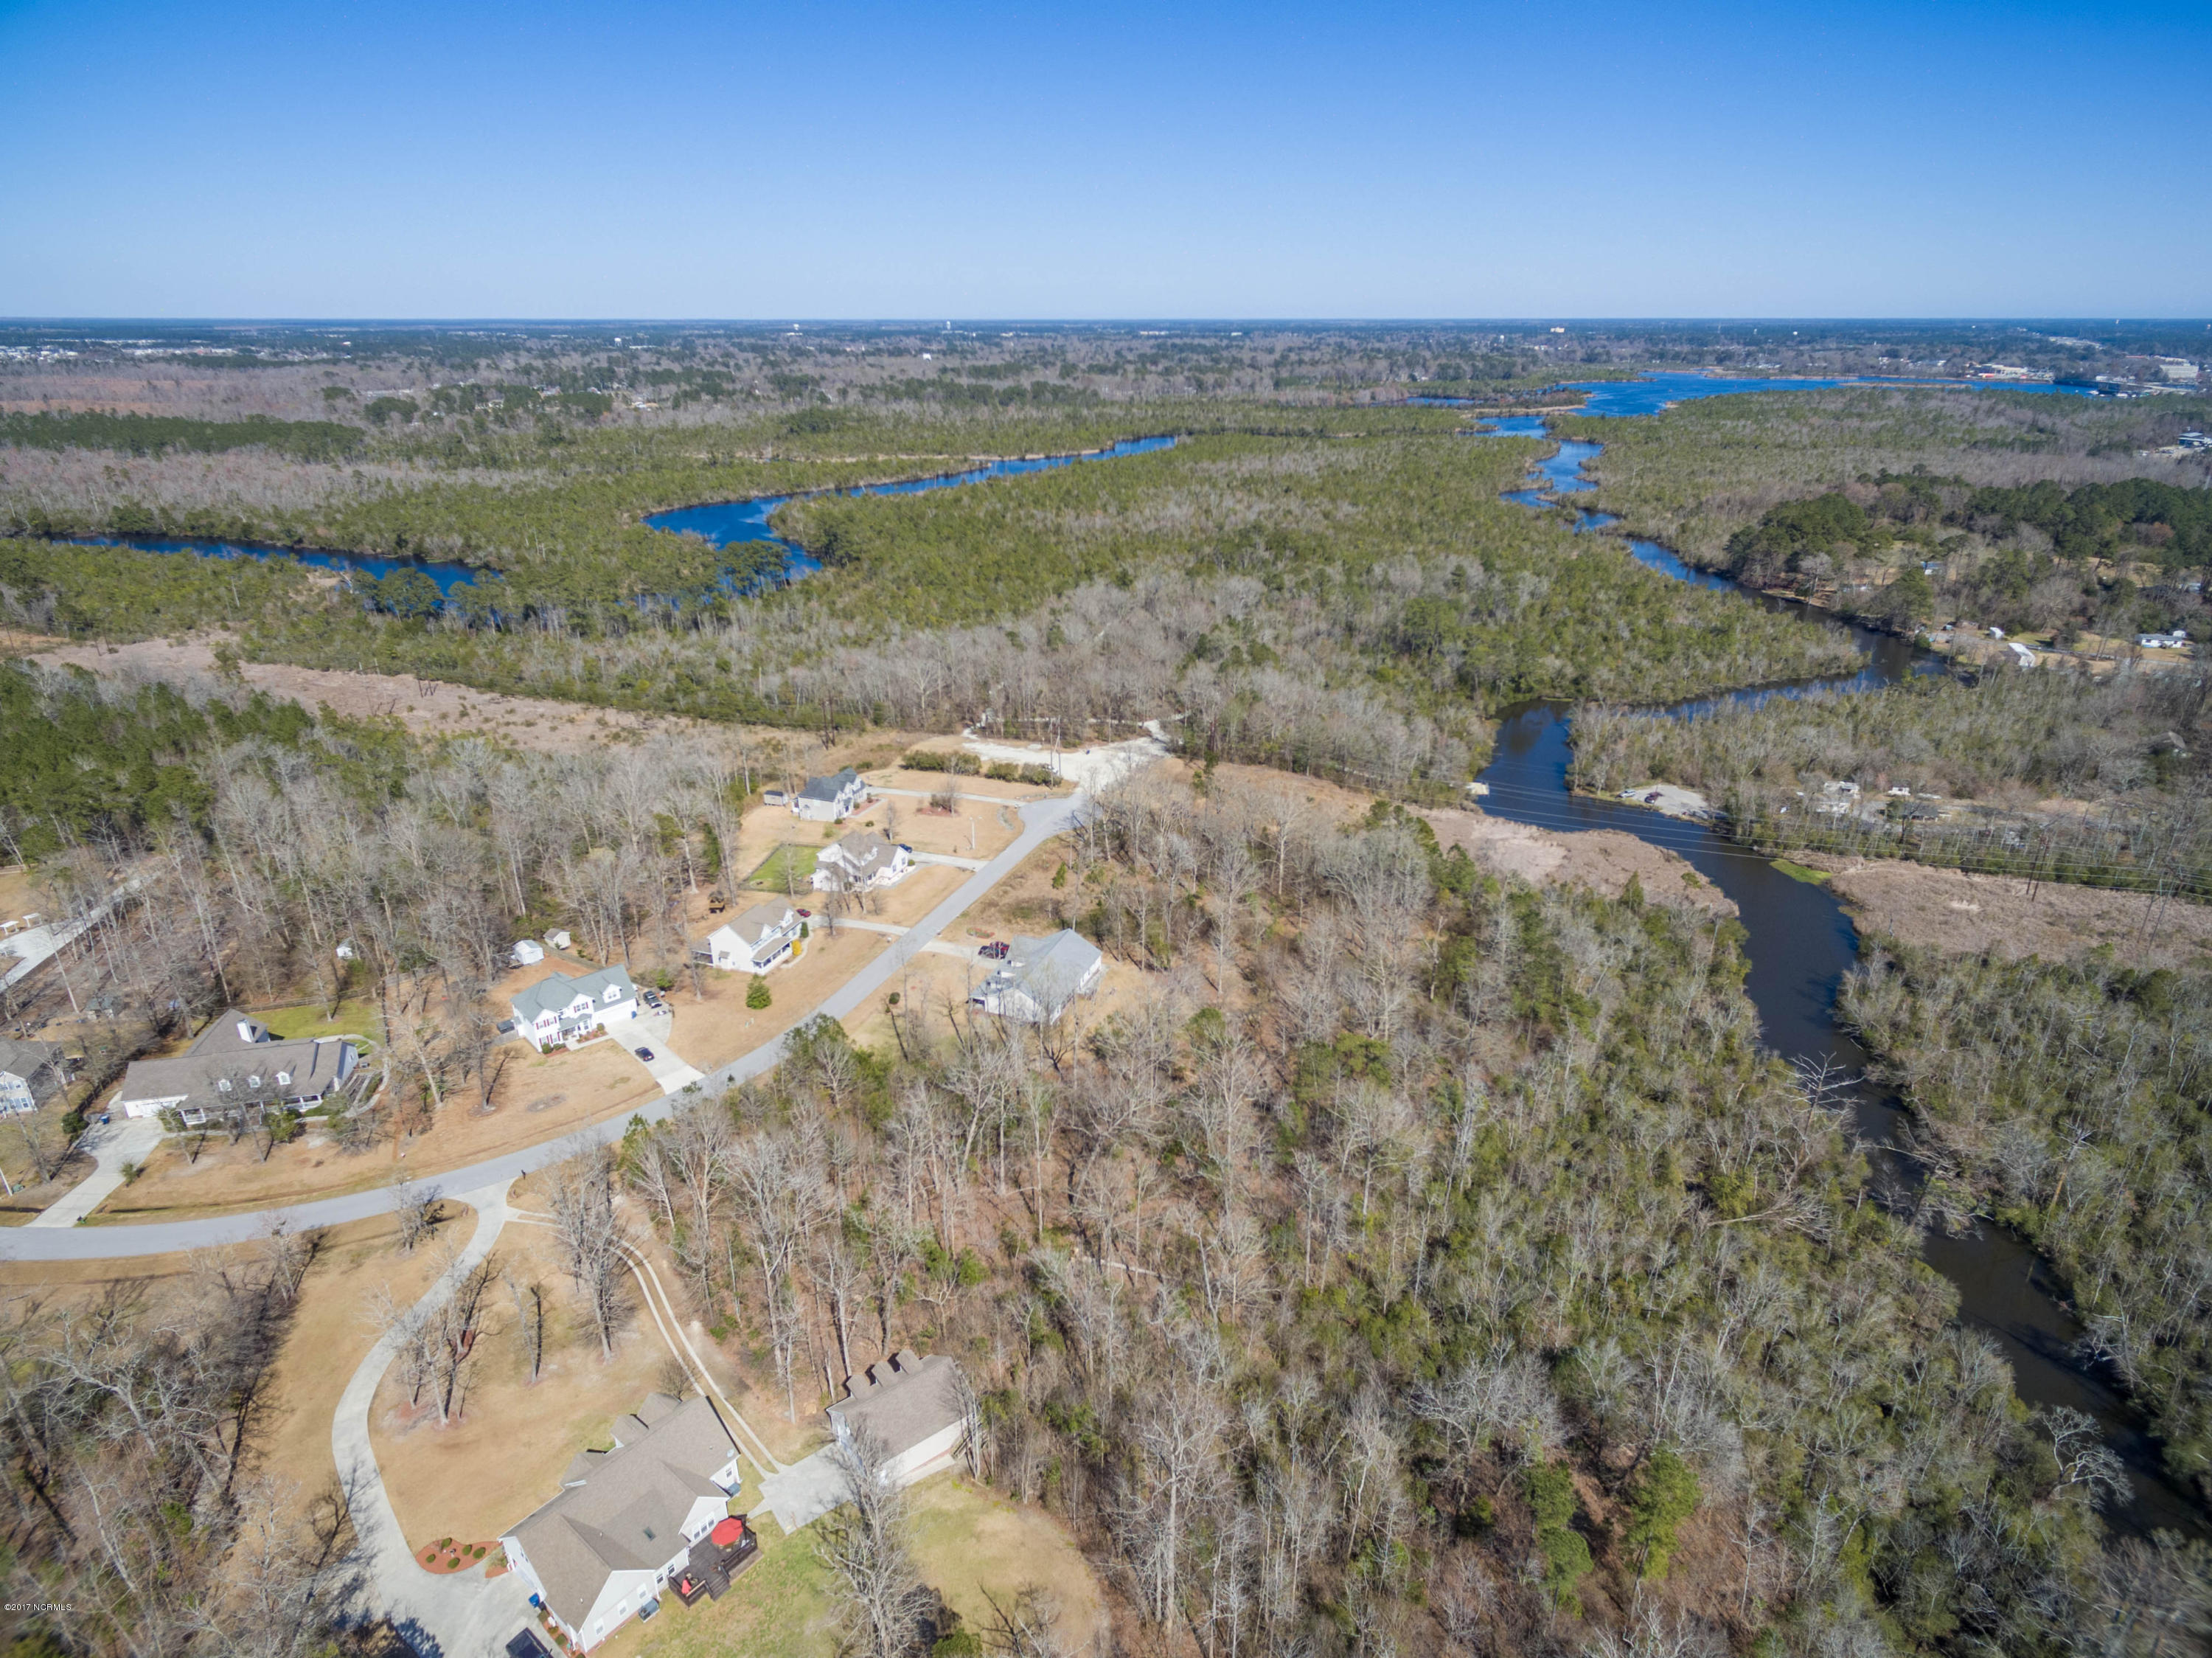 Nestled in established and desirable Oakhurst River Estates is where you will find this large lot. This great piece of land offers frontage on Blue Creek with access to New River and the Ocean! Located near MCAS New River, shopping, restaurants and much more in an up and coming area!